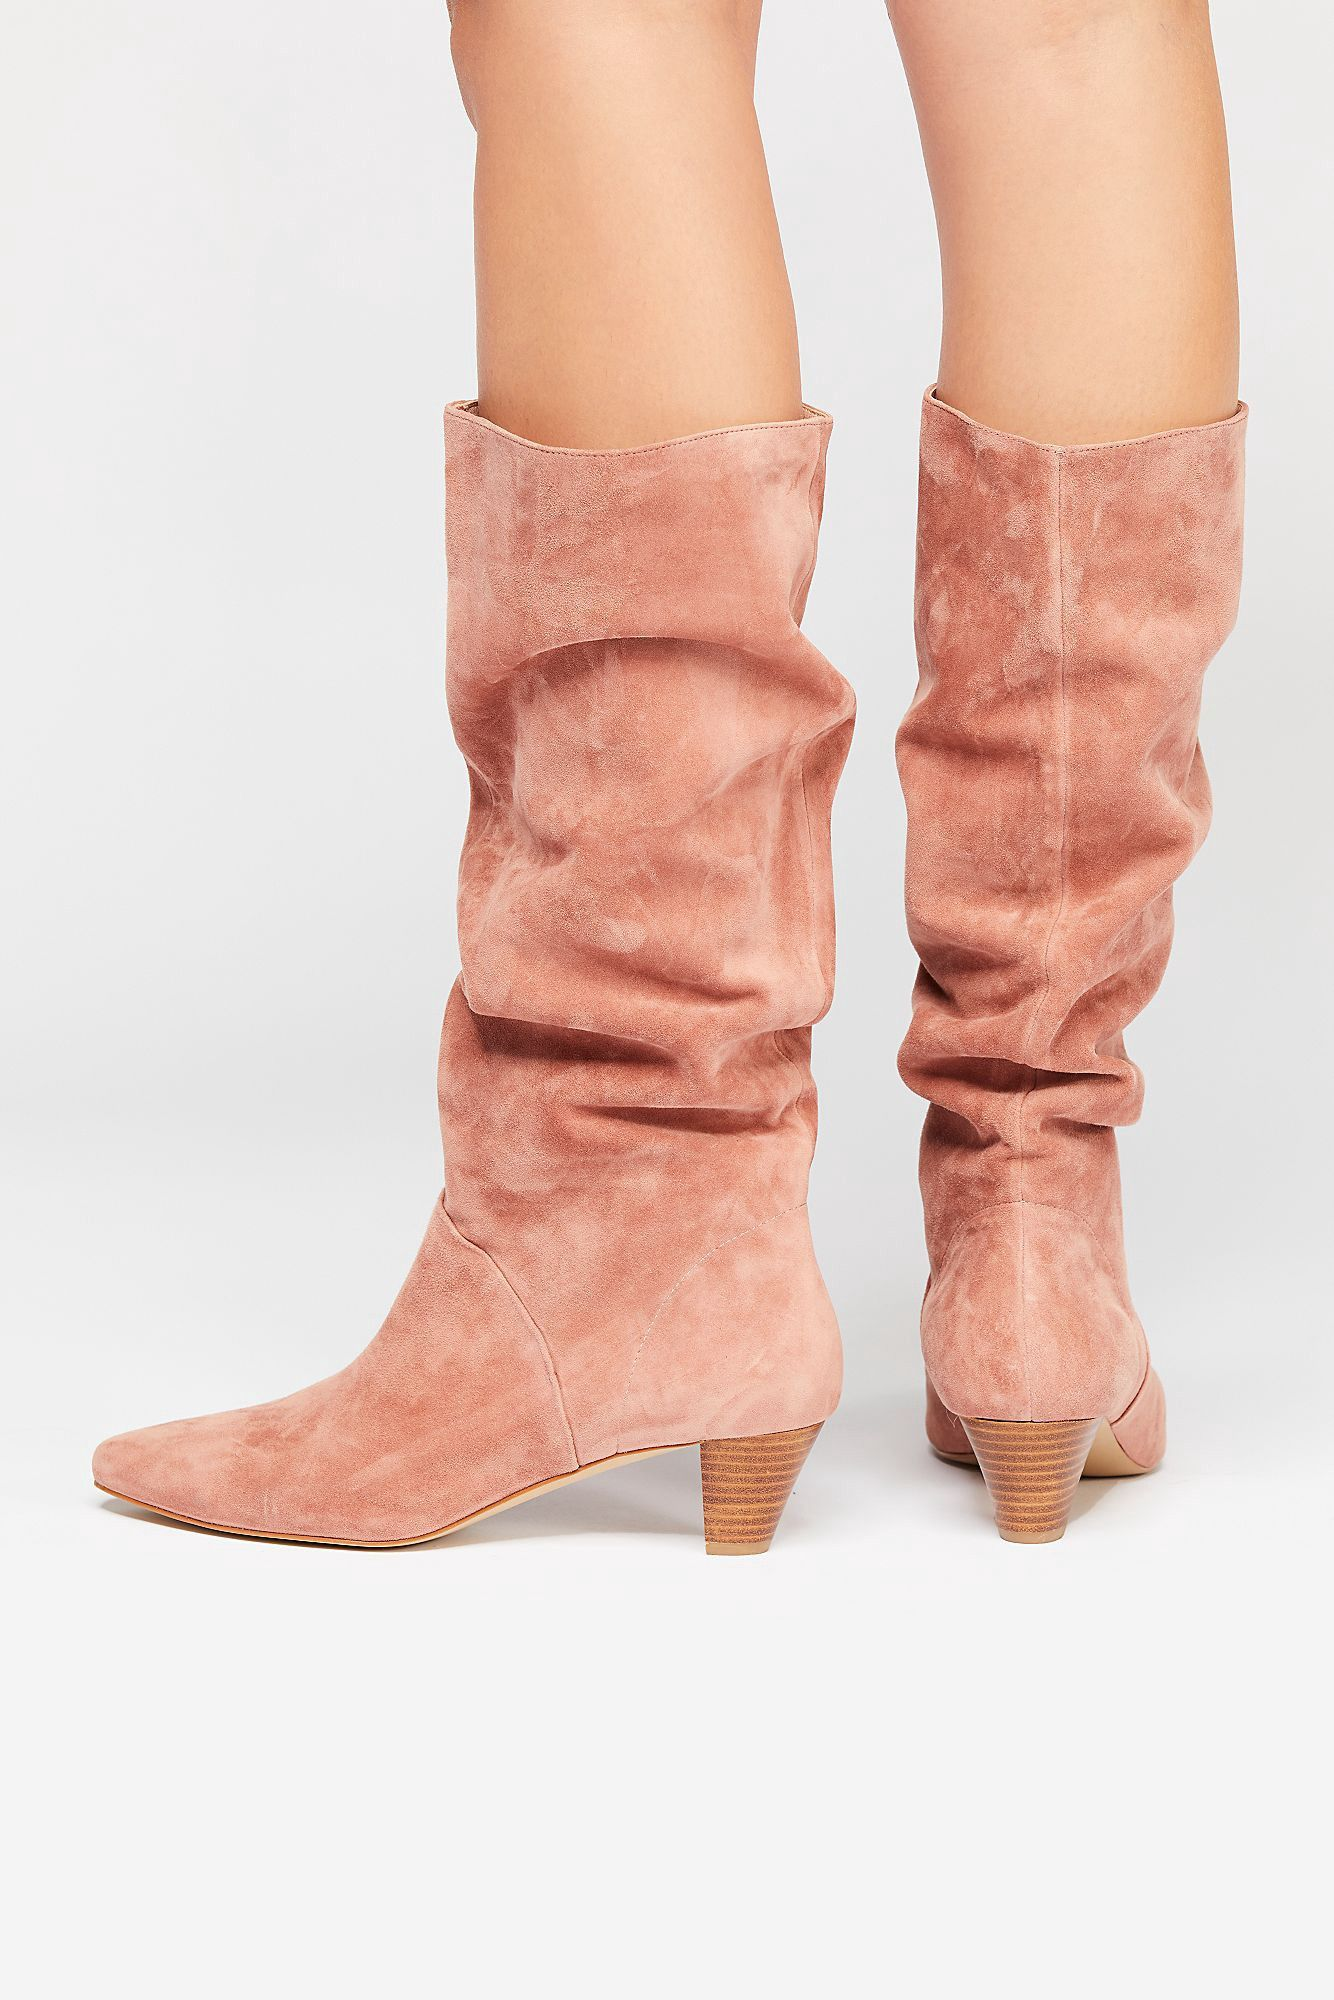 5450c9c77ce Free People Jaclyn Heel Boot - 36 Euro in 2019 | Products | Boots ...